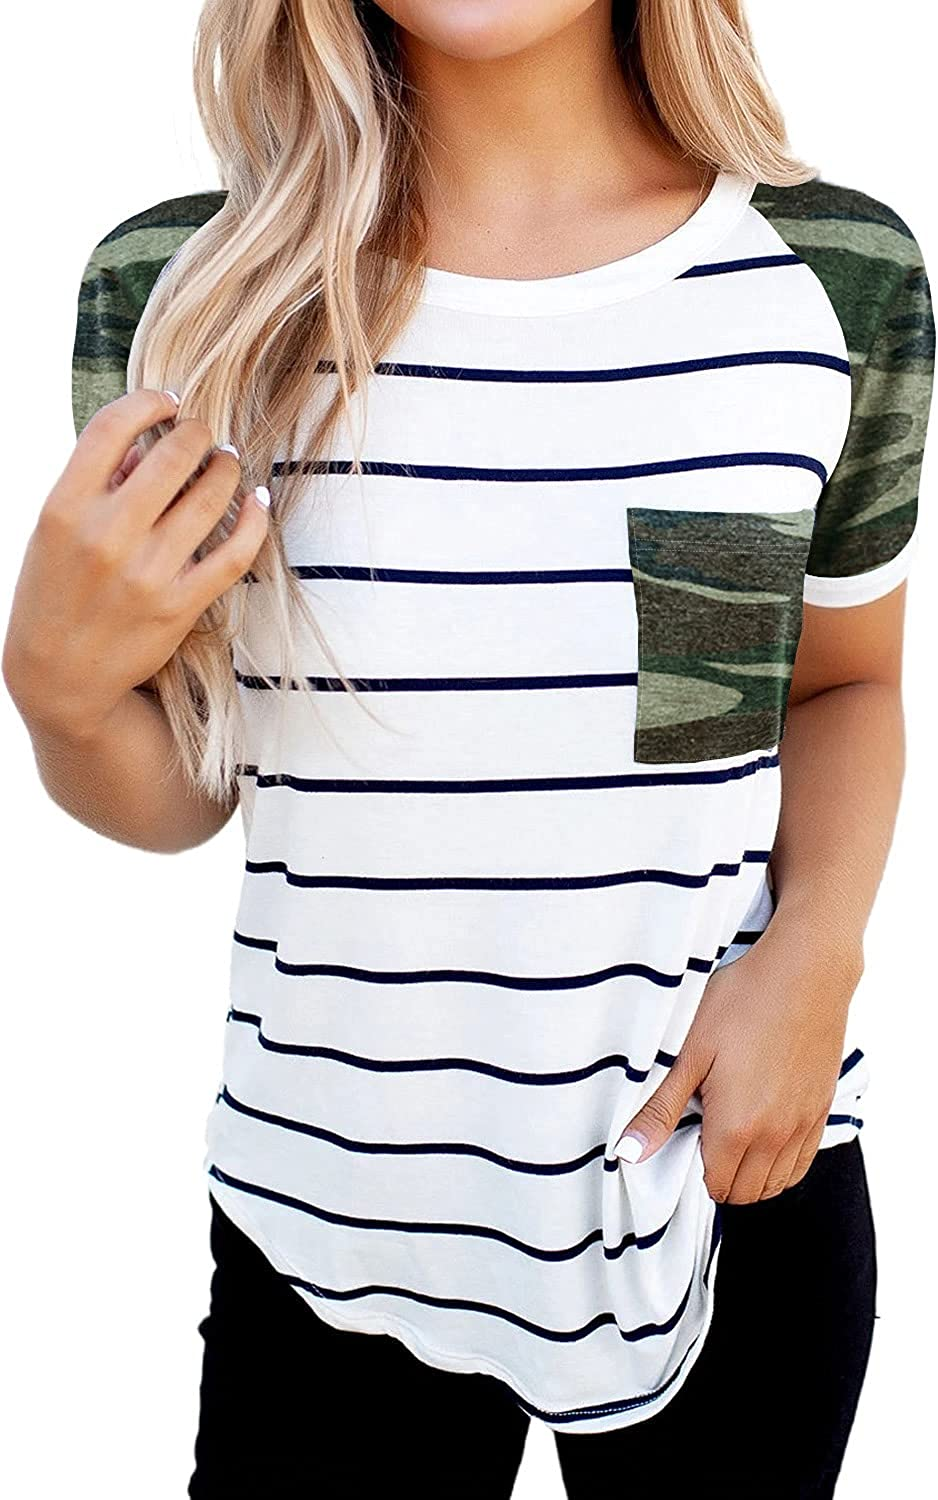 Dokotoo Shirts for Women Round Neck T Shirts Short Sleeve Casual Block Patchwork Tops Blouse with Pocket